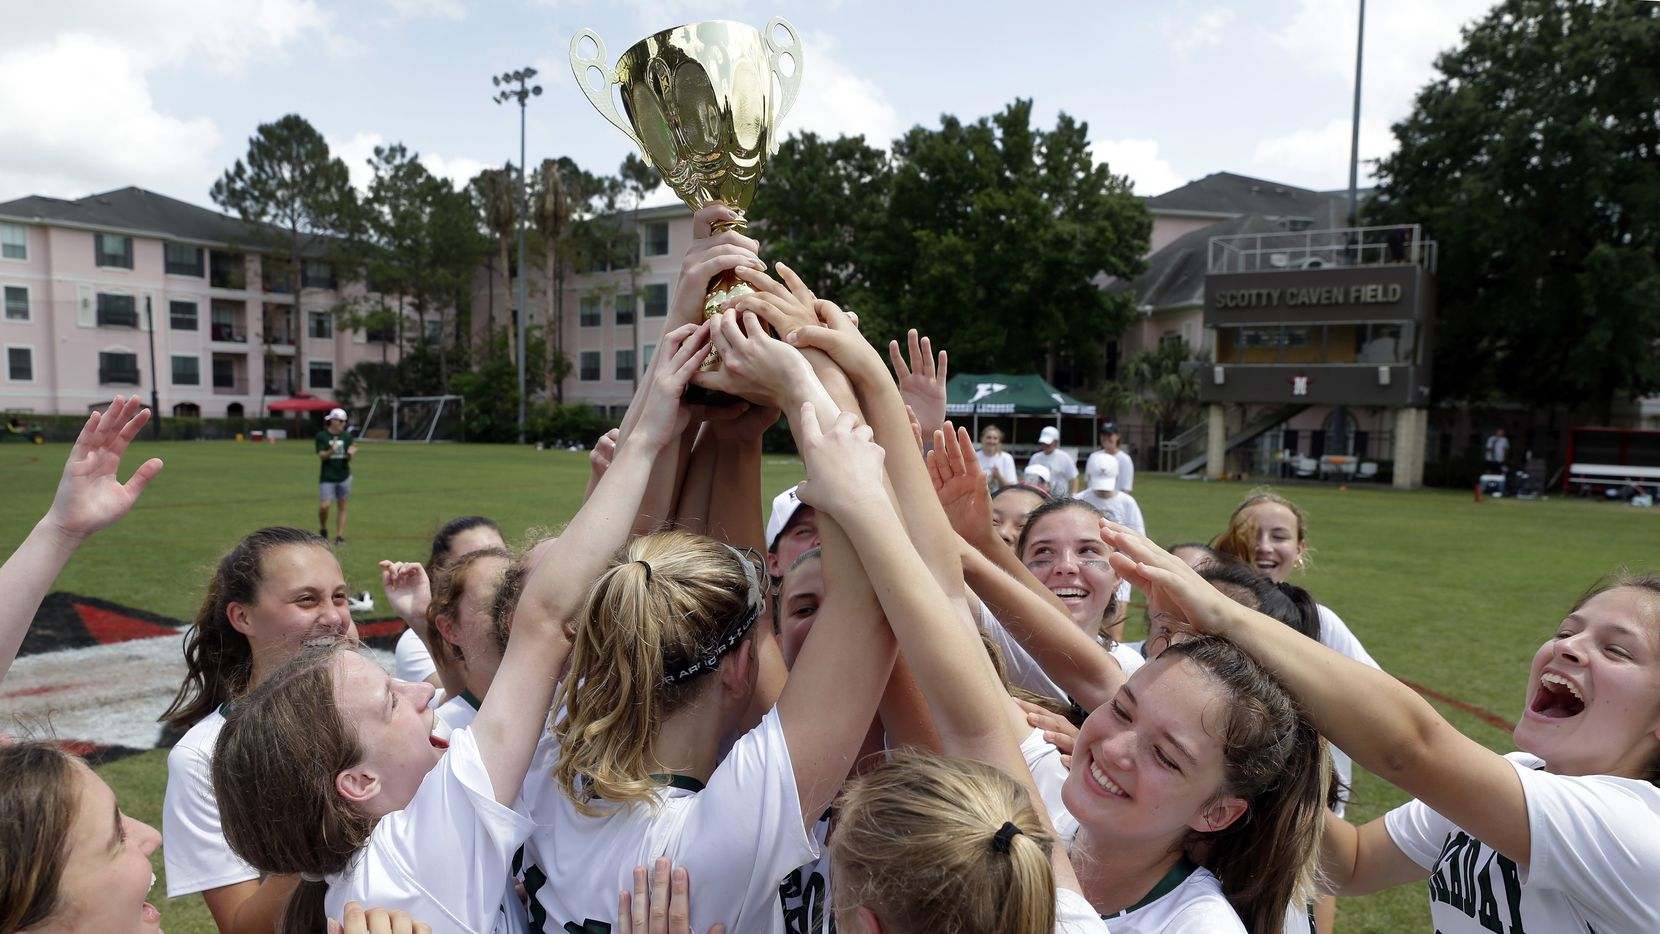 Hockaday players hoist the trophy after their 14-11 win against Southlake Carroll in the Division 1 Texas Girls High School Lacrosse League State Championship game at Scotty Caven Field in Houston, Texas on Sunday, May 9, 2021.